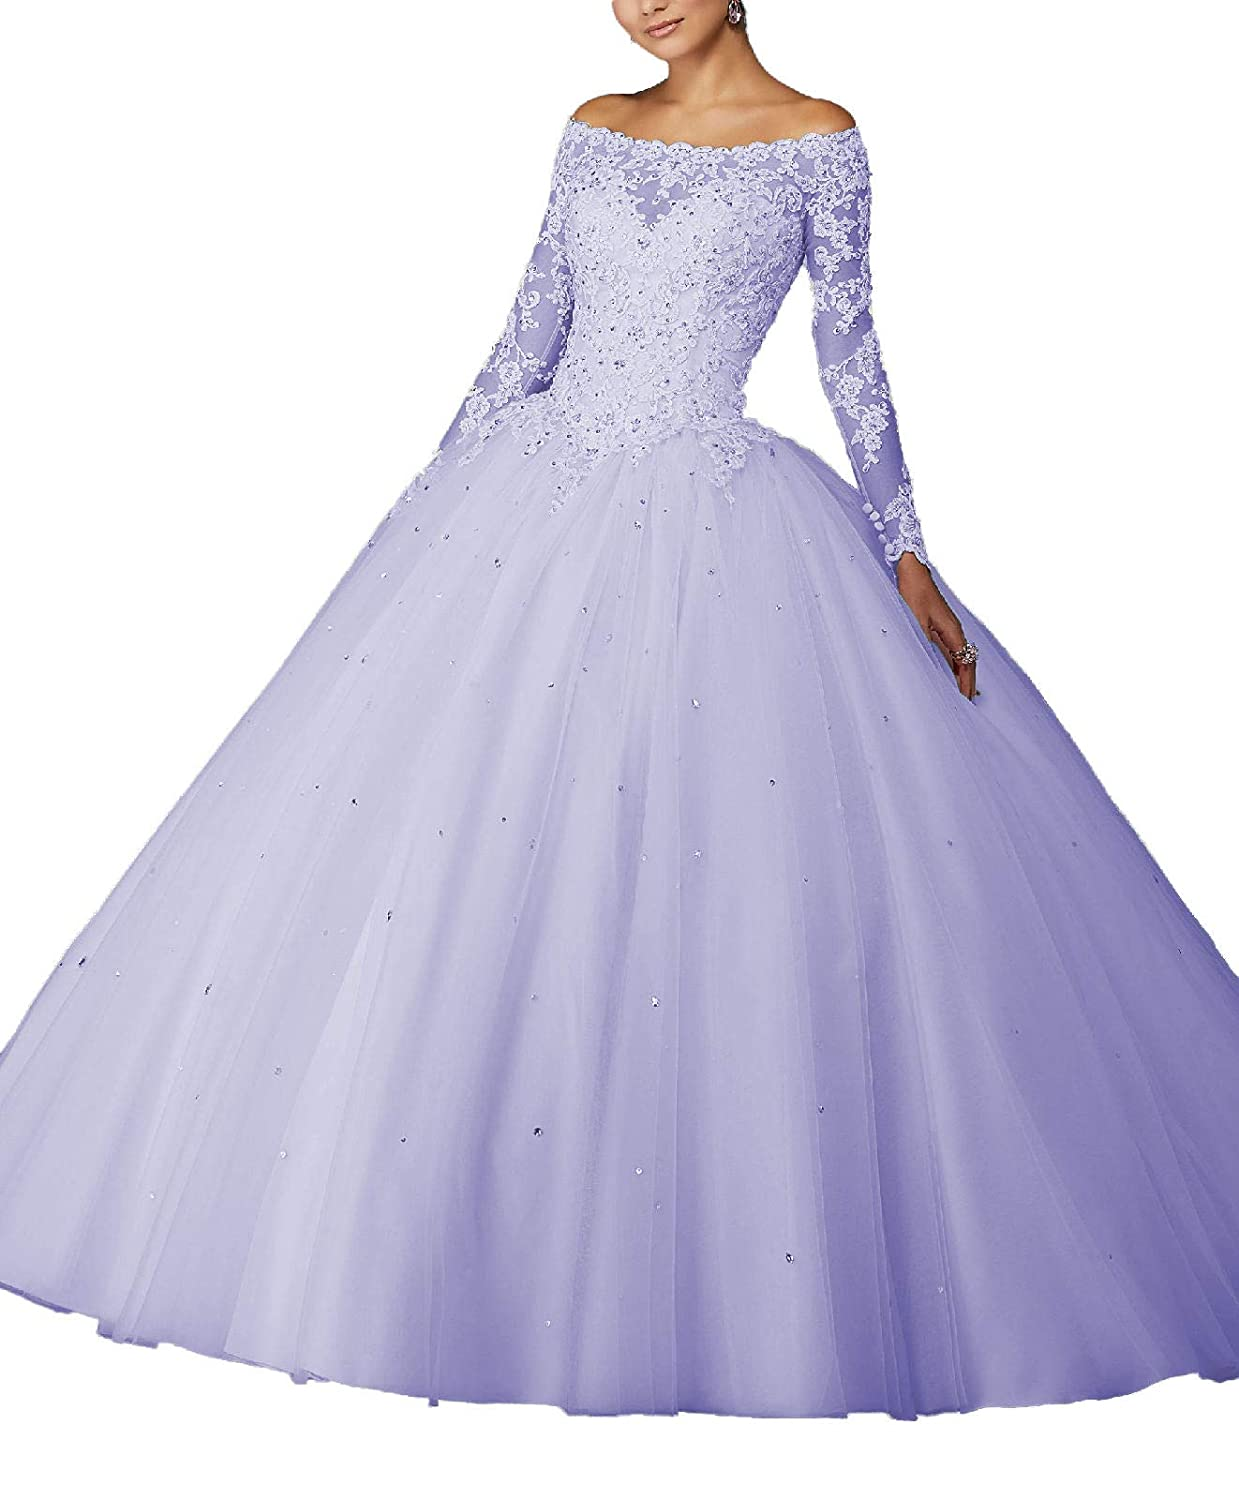 purplec Yisha Bello Women's Off The Shoulder Lace Applique Pro Ball Gowns Long Sleeve Beaded Quinceanera Dresses for Sweet 16